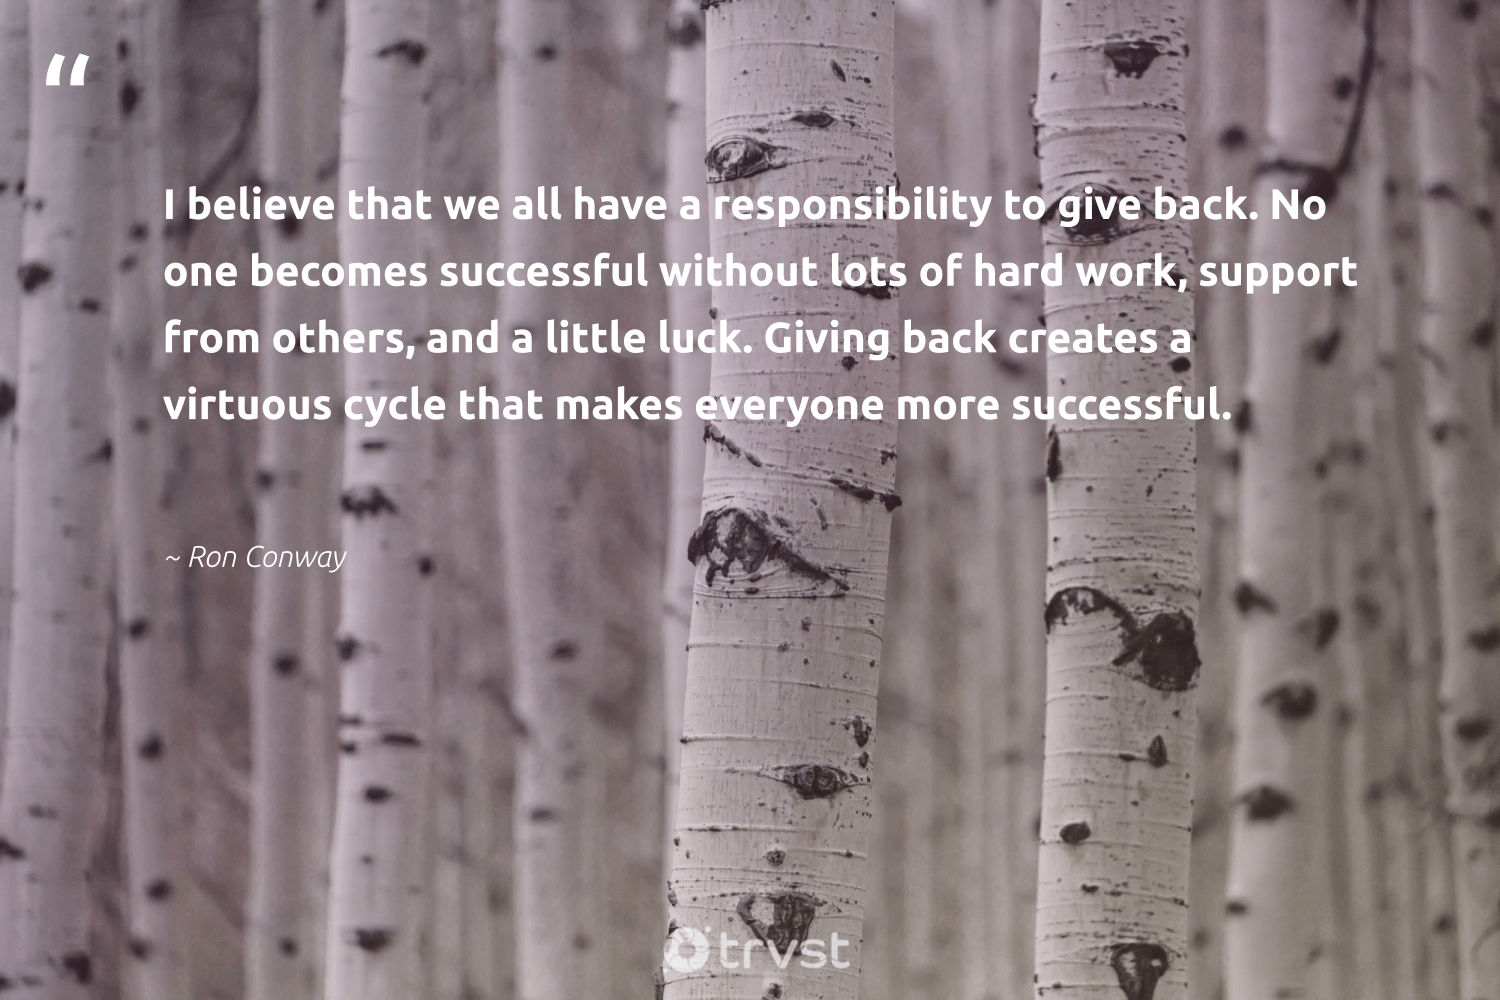 """""""I believe that we all have a responsibility to give back. No one becomes successful without lots of hard work, support from others, and a little luck. Giving back creates a virtuous cycle that makes everyone more successful.""""  - Ron Conway #trvst #quotes #givingback #giveback #dogood #socialgood #giveforthefuture #itscooltobekind #dosomething #changemakers #togetherwecan #bethechange"""